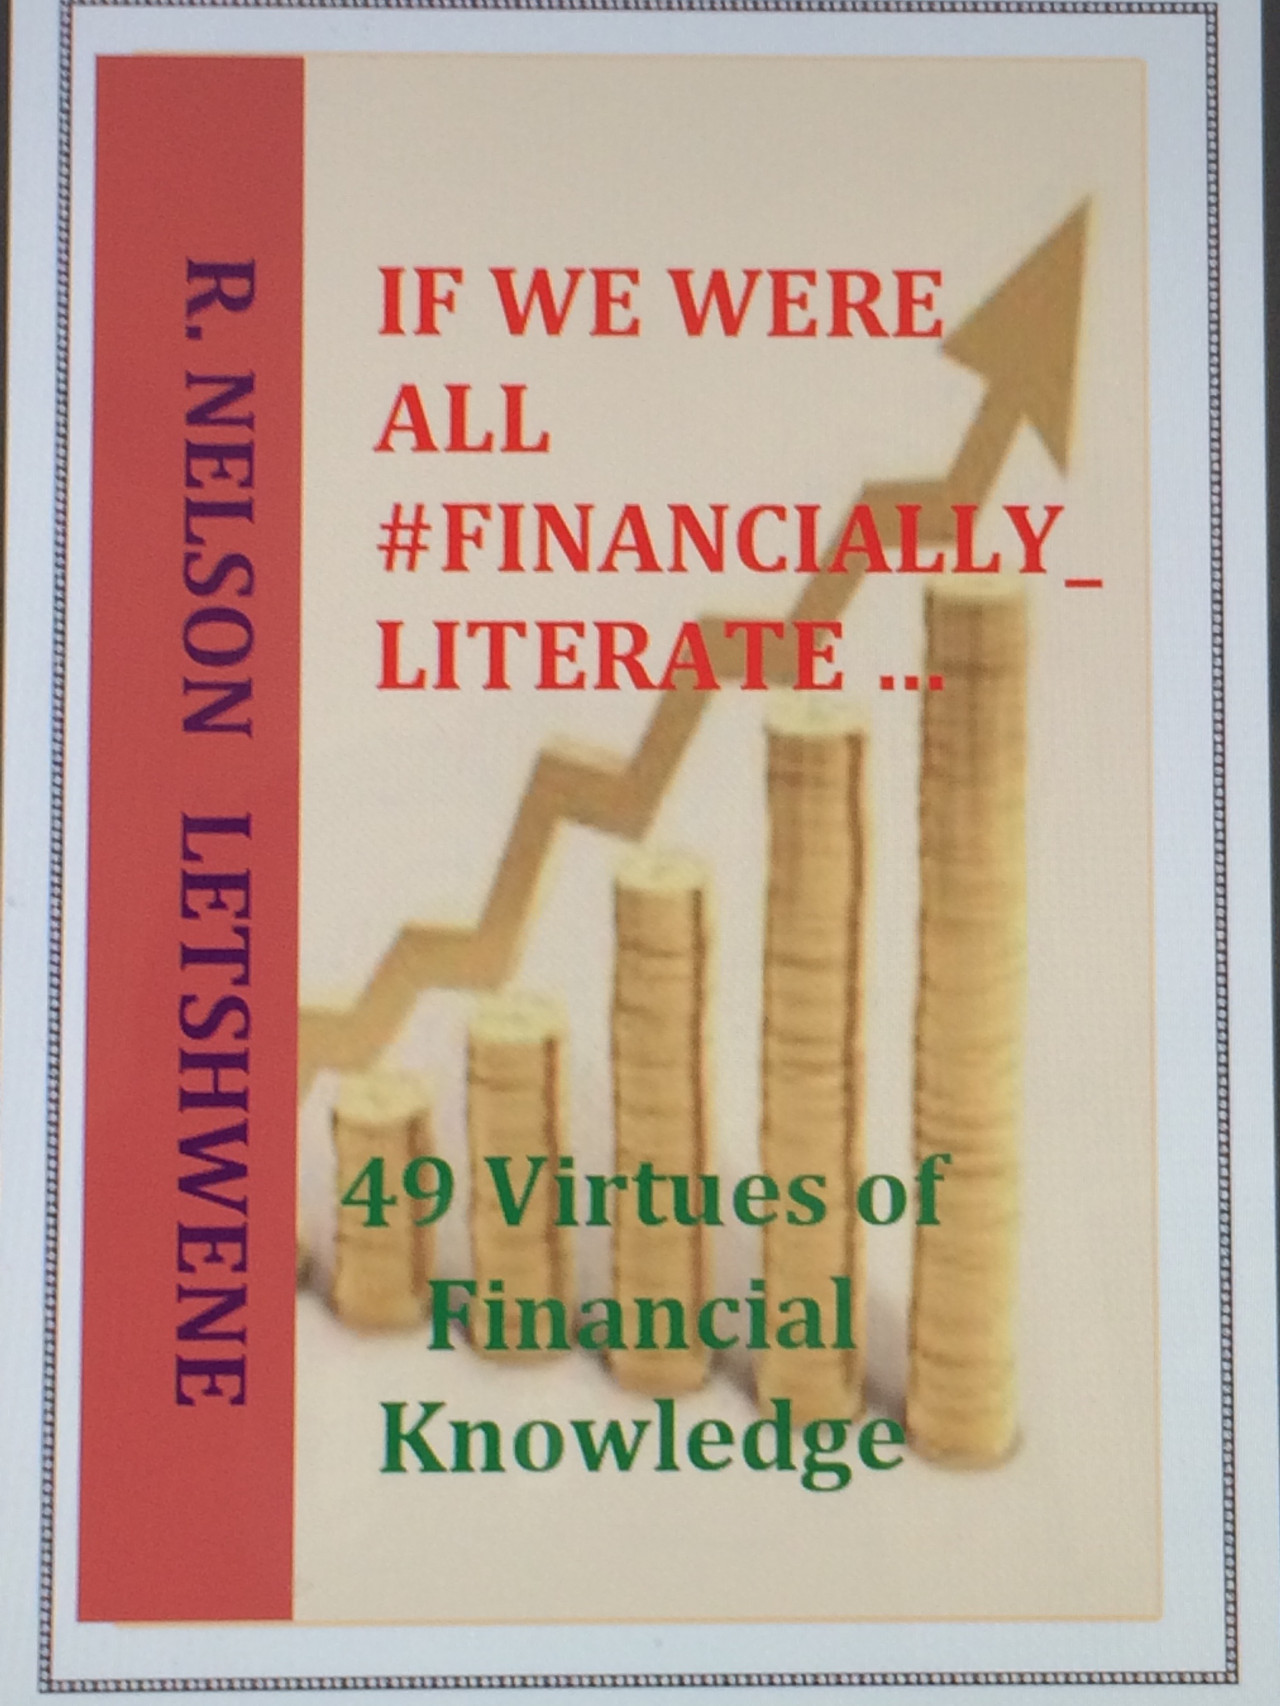 If We Were All #Financially_Literate